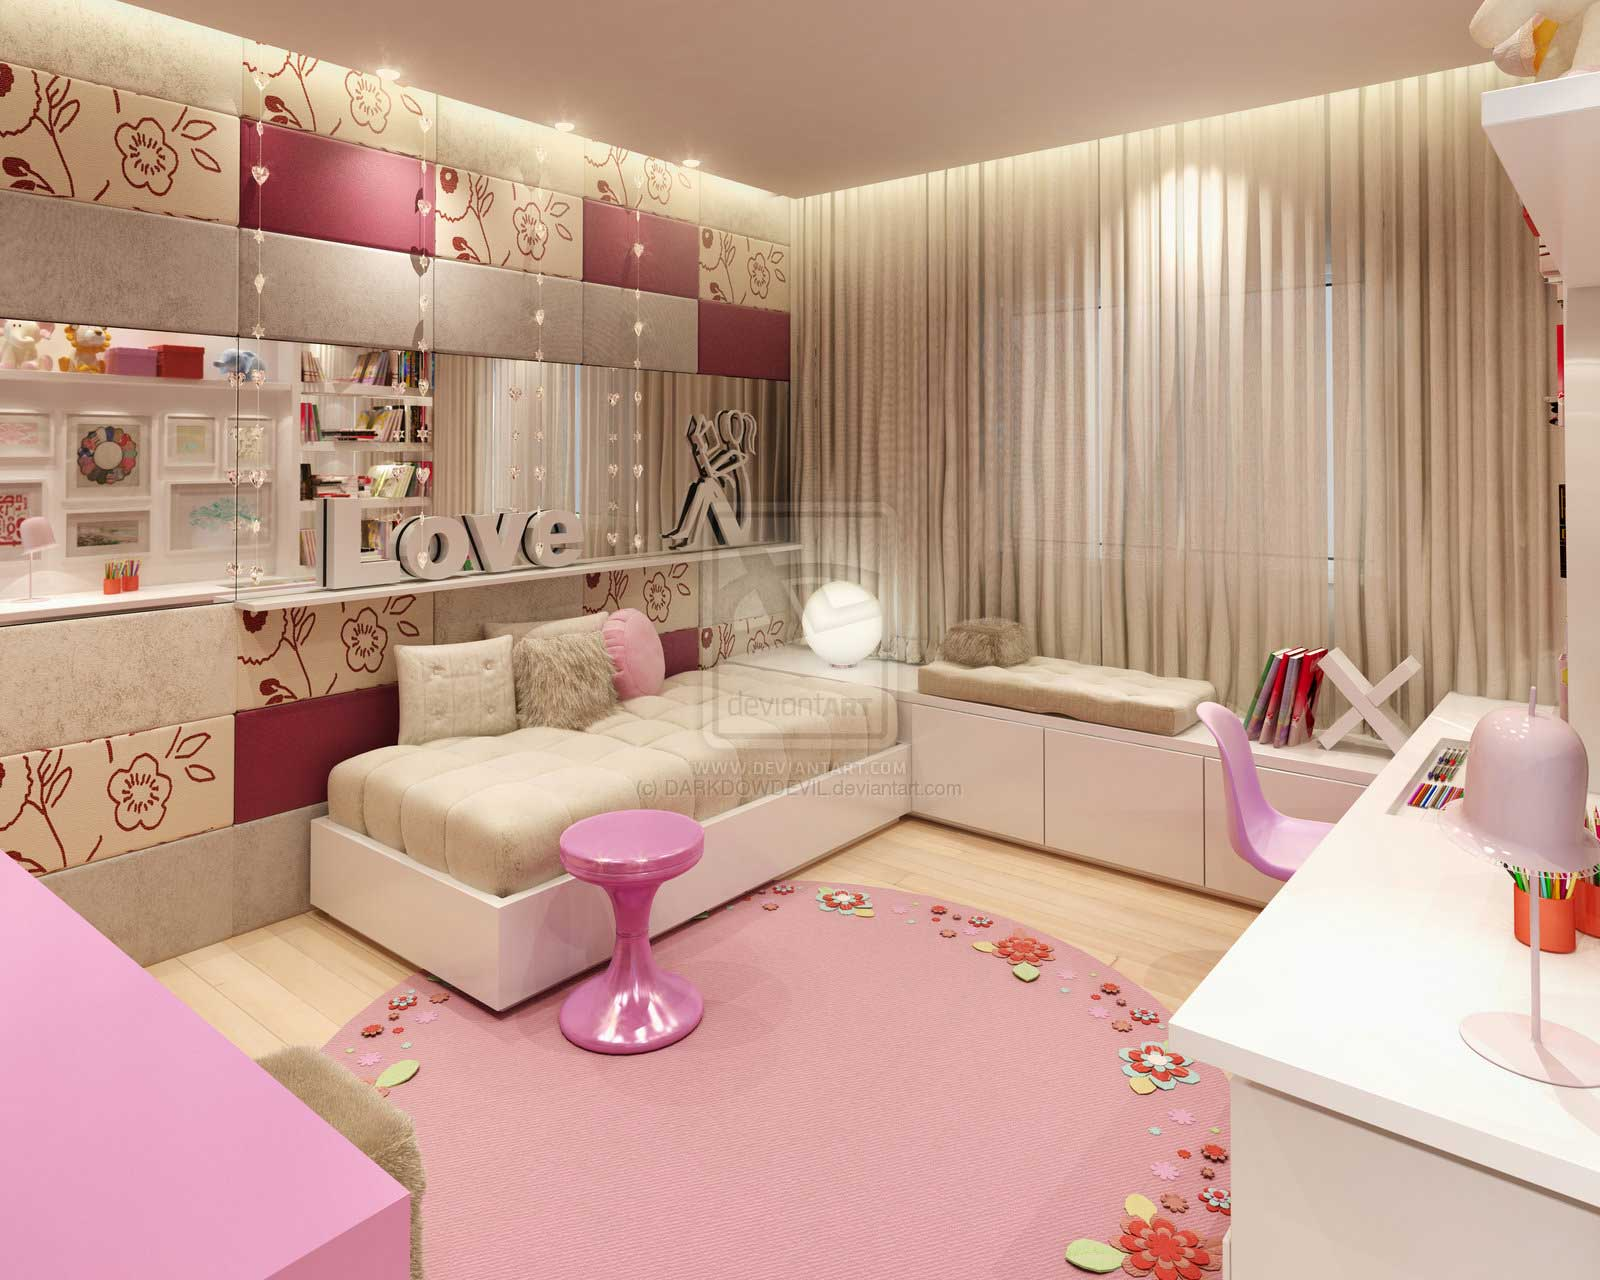 Teenage Girl Bedroom Images Comfort Pink Girl Bedroom By Darkdowdevil Interior